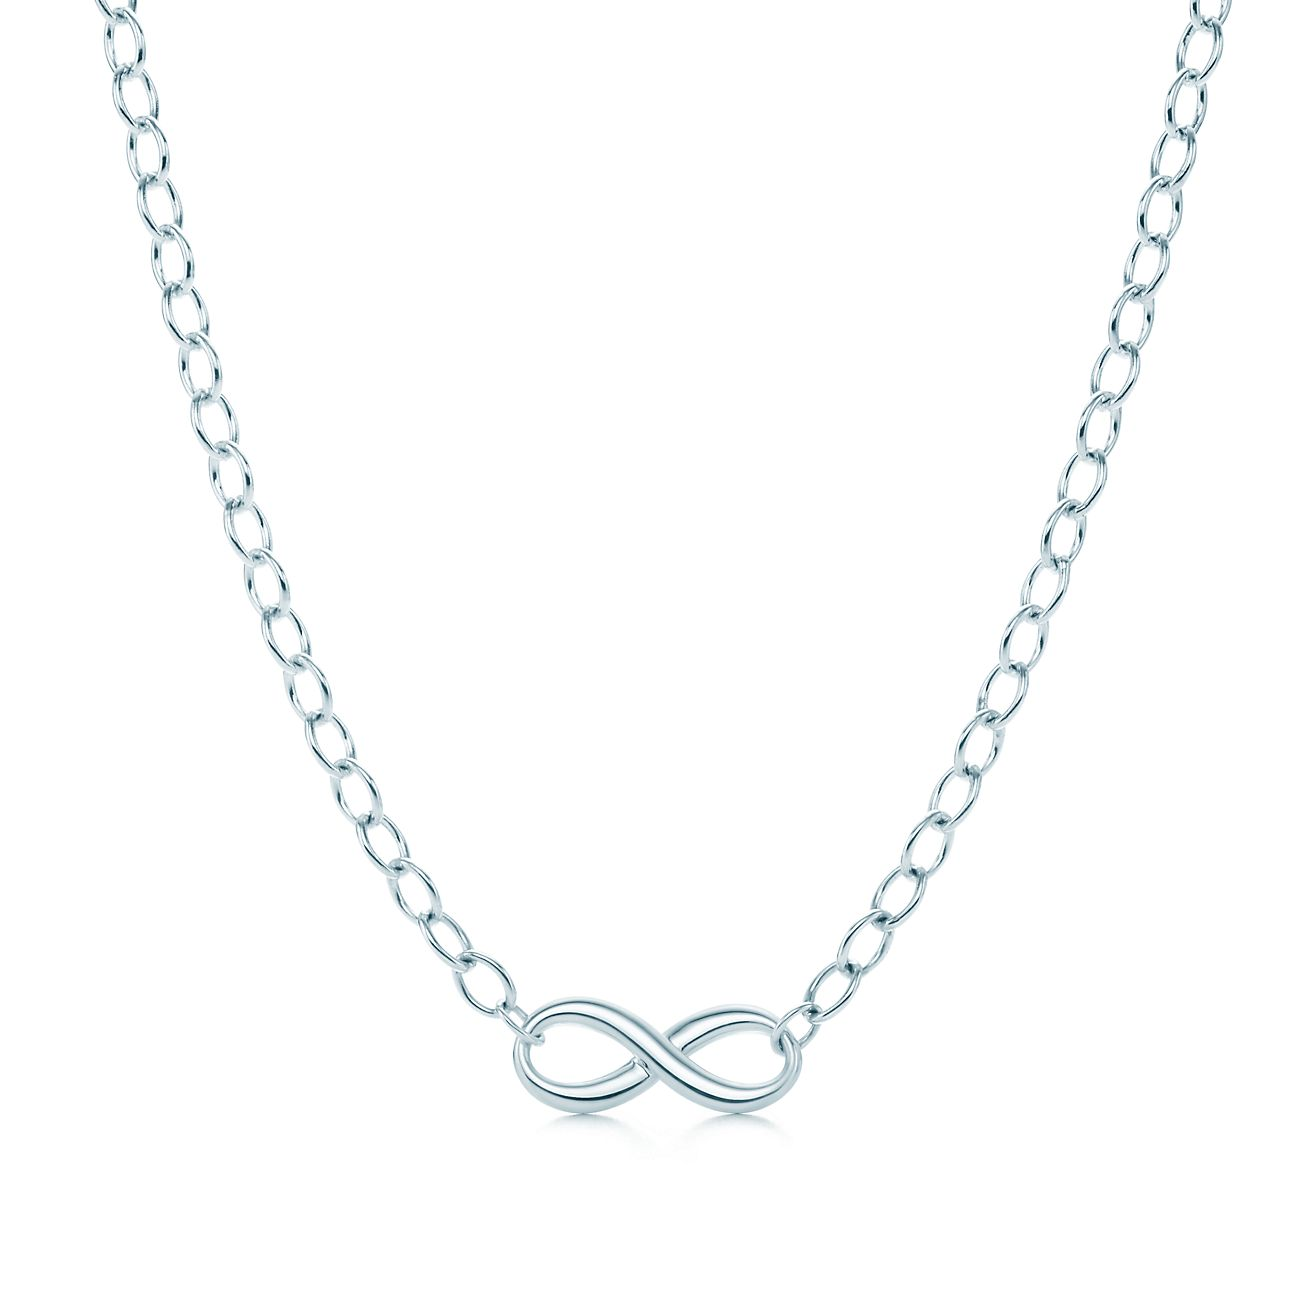 outlet b2c9a 98759 Collana Tiffany Infinity in argento. | Tiffany & Co.